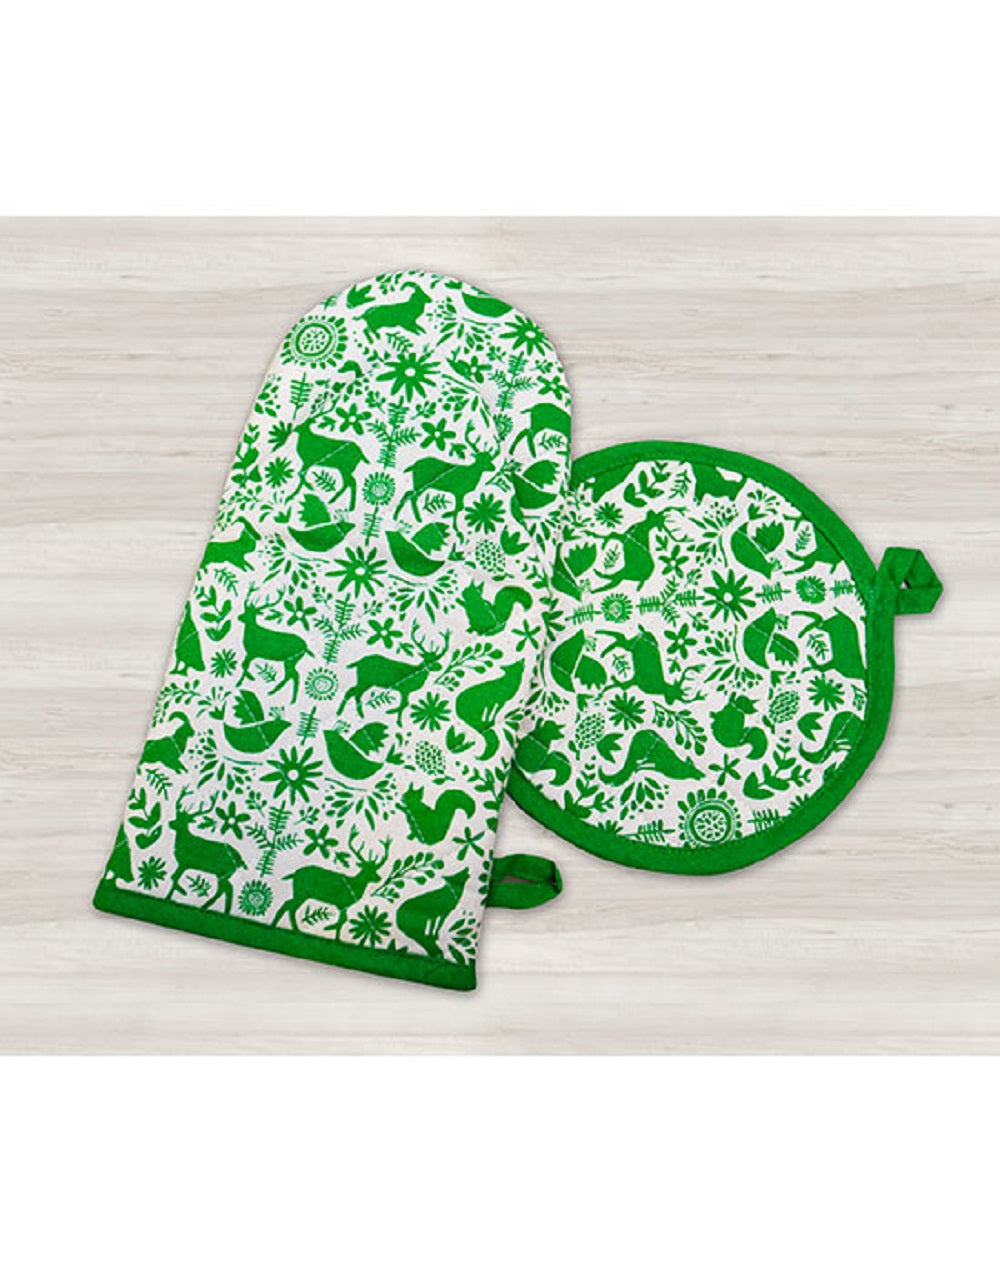 Holiday Oven Mitts & Pot Holder/ Set of 2, Otomi Green